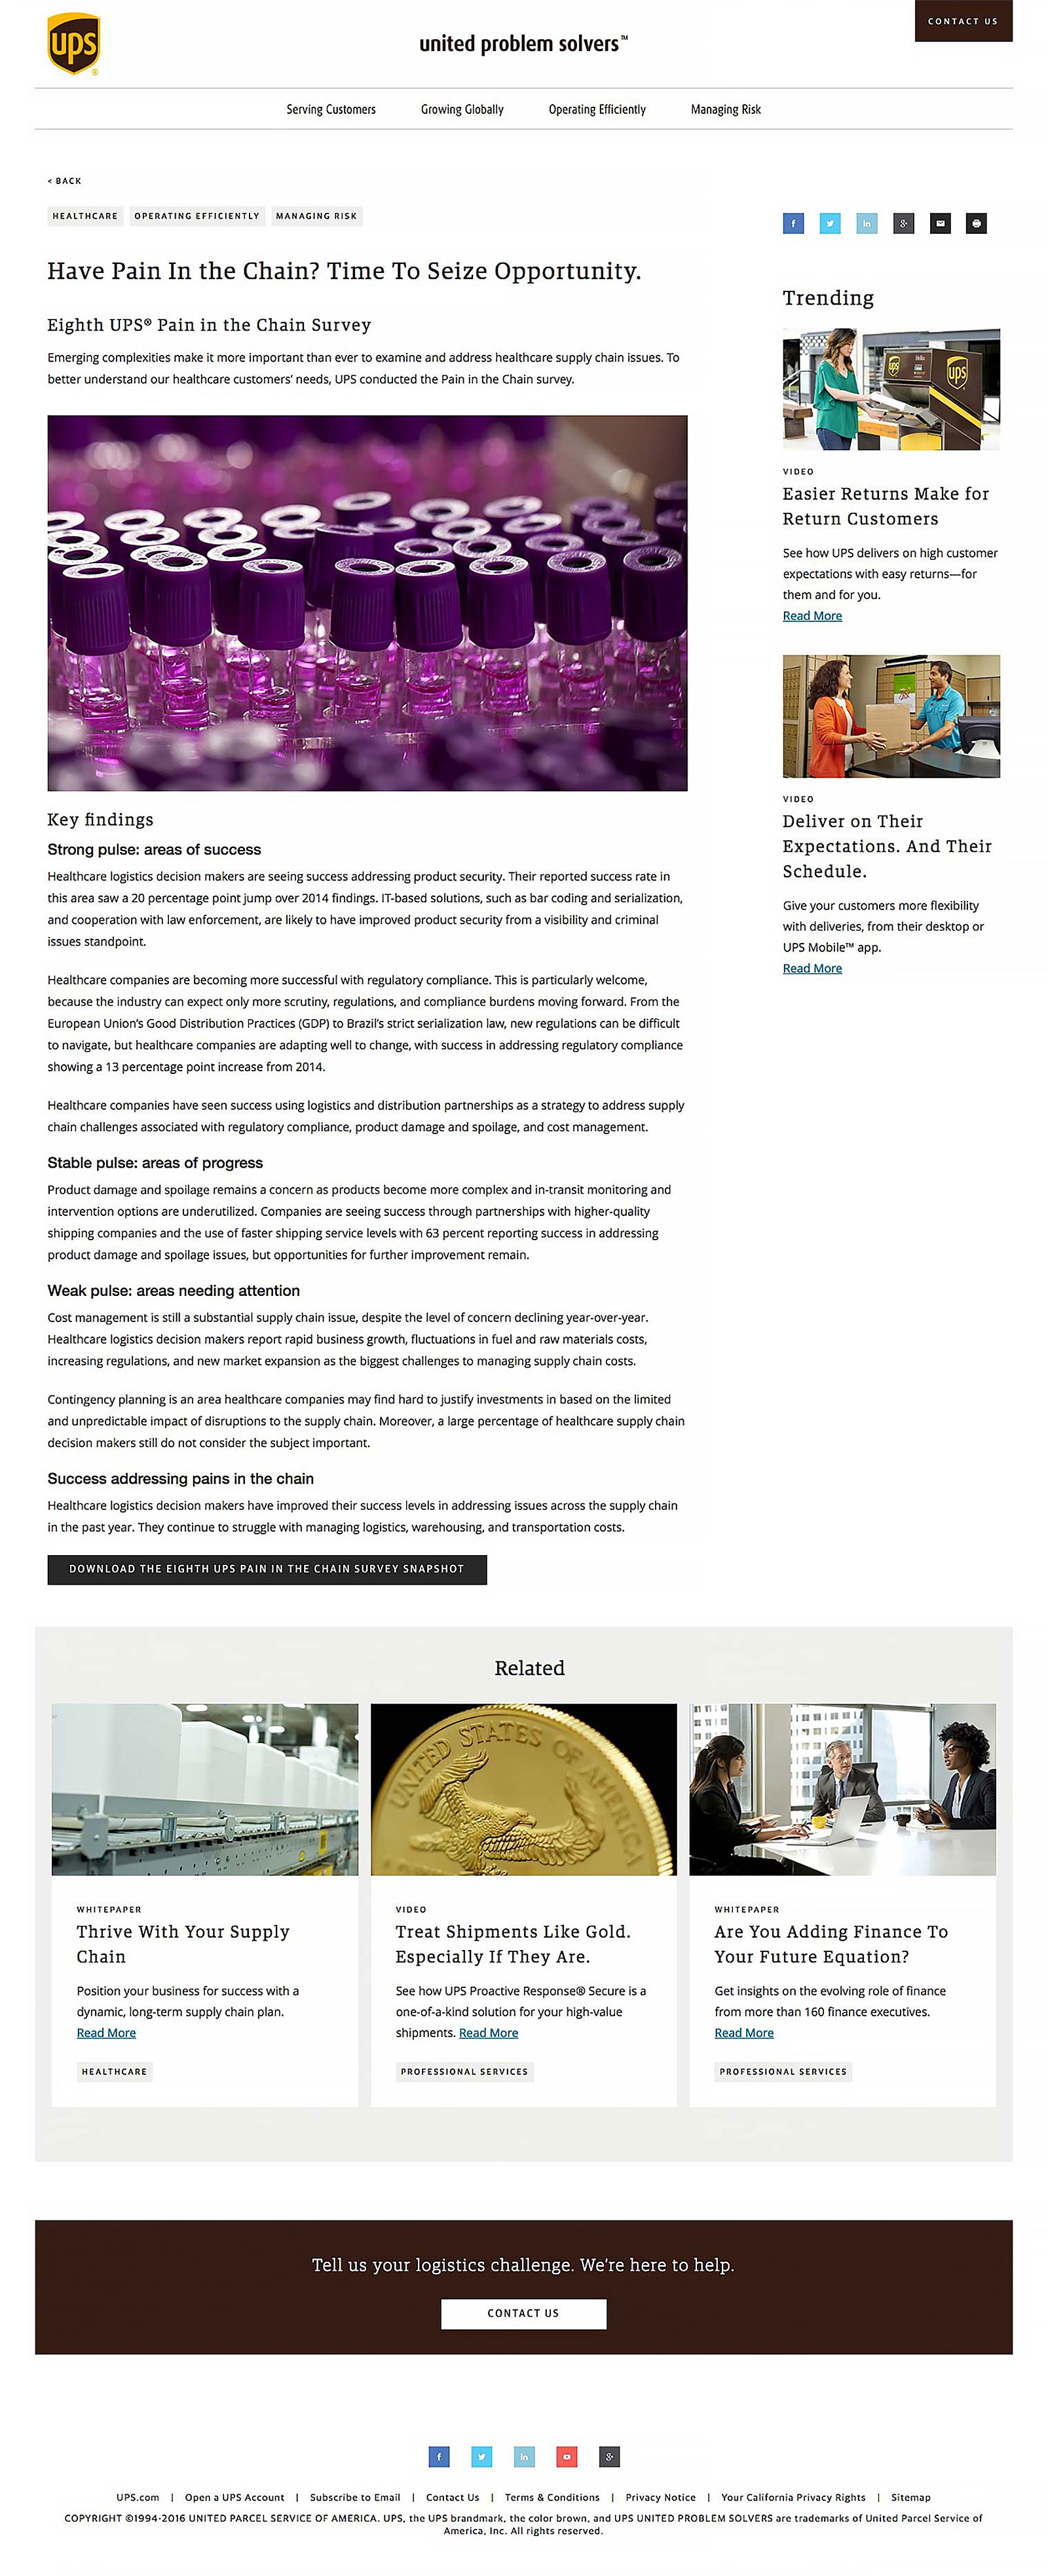 Article content page